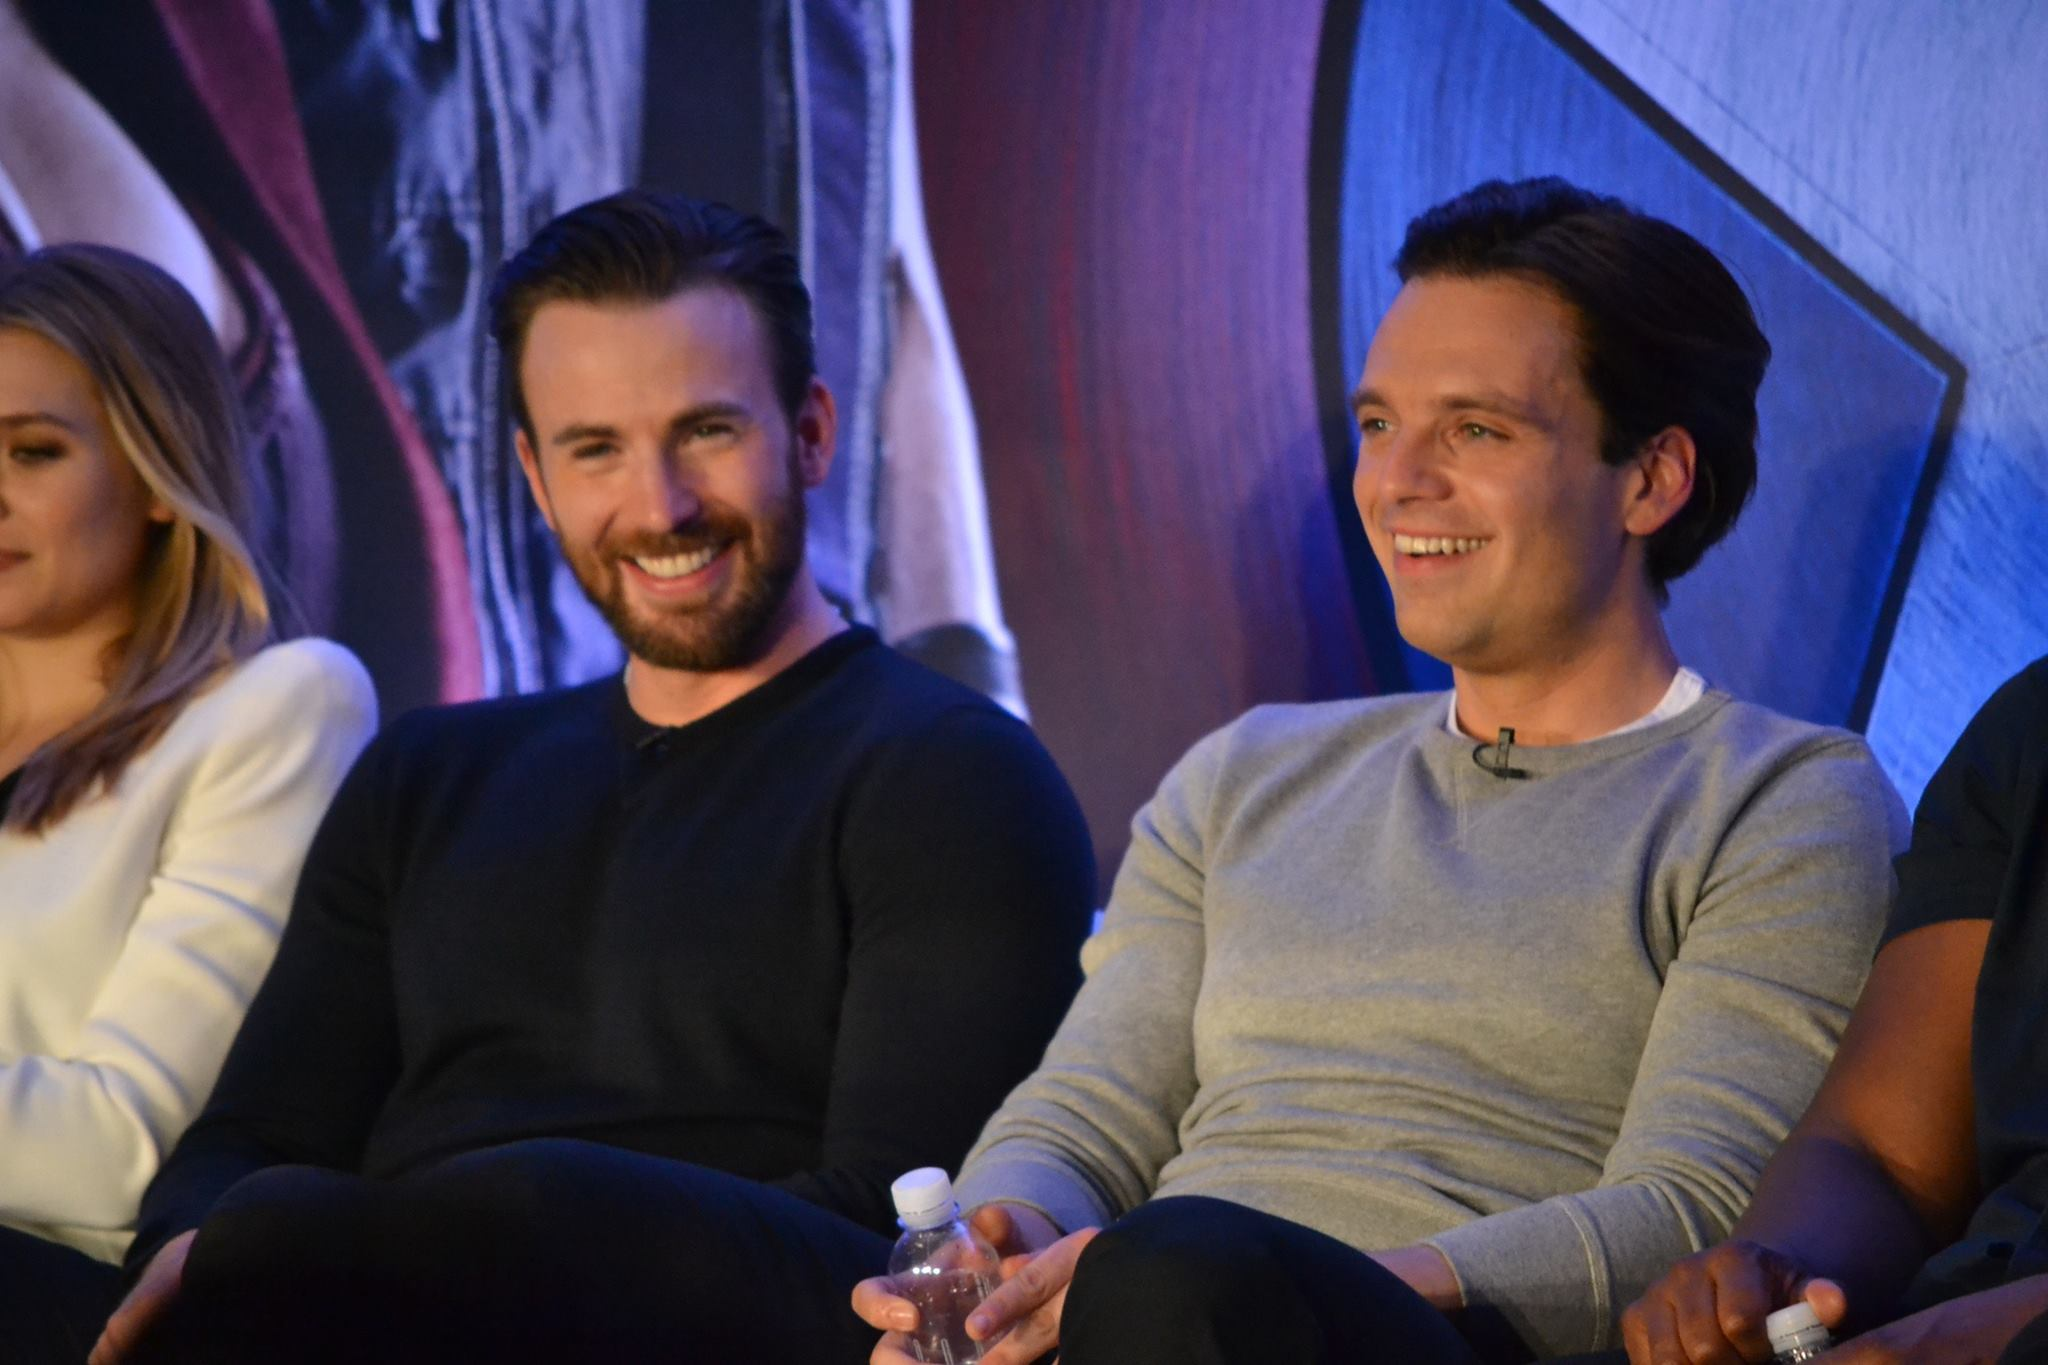 12998313 988488314568562 3035498227912017229 o Six best moments of #TeamCap Civil War press conference: Smack talking Team Iron Man, Stucky, and more